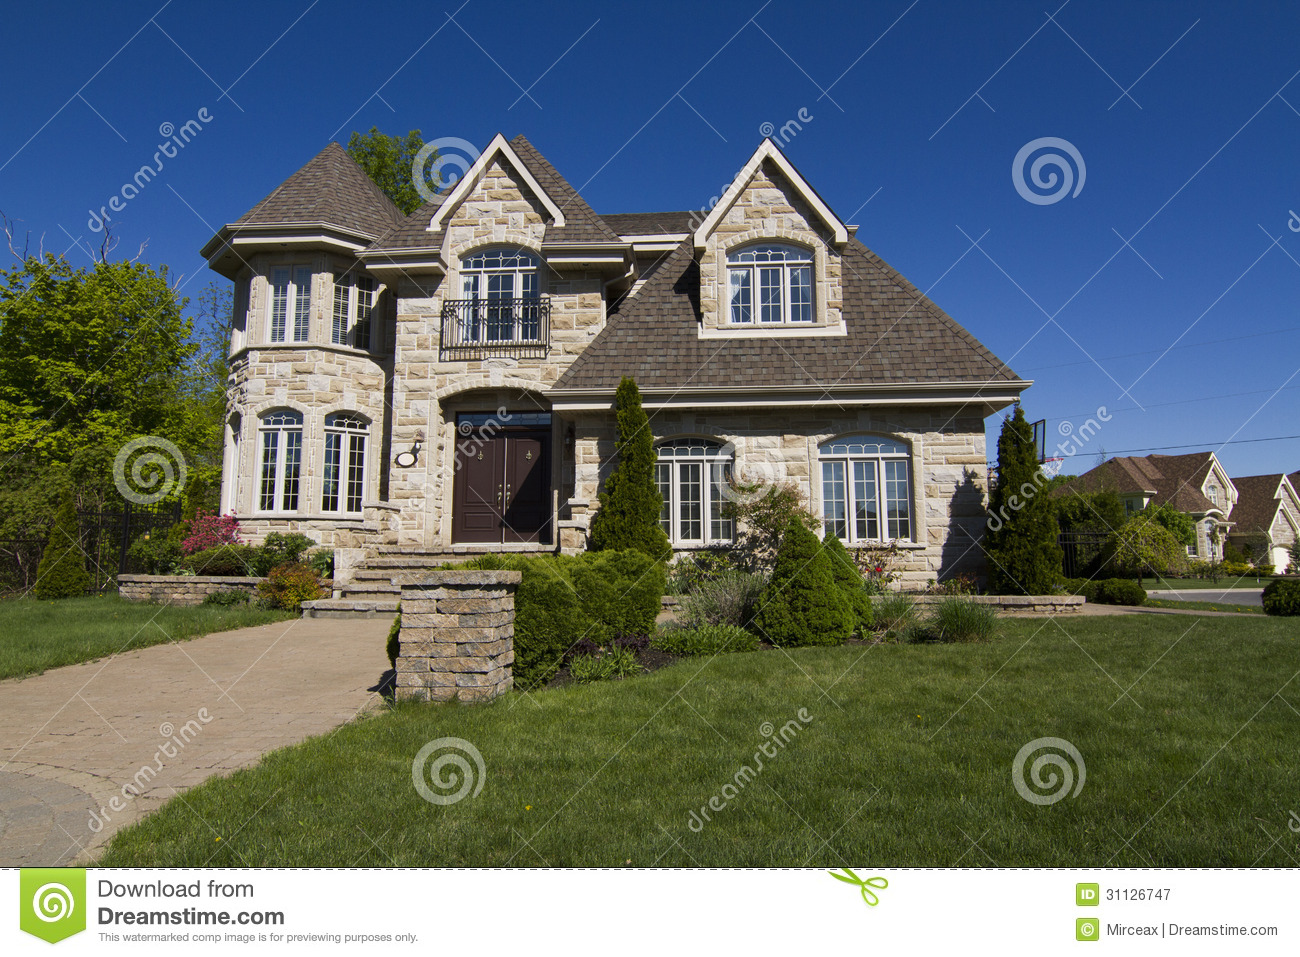 Luxury house royalty free stock photography image 31126747 for Free luxury home images